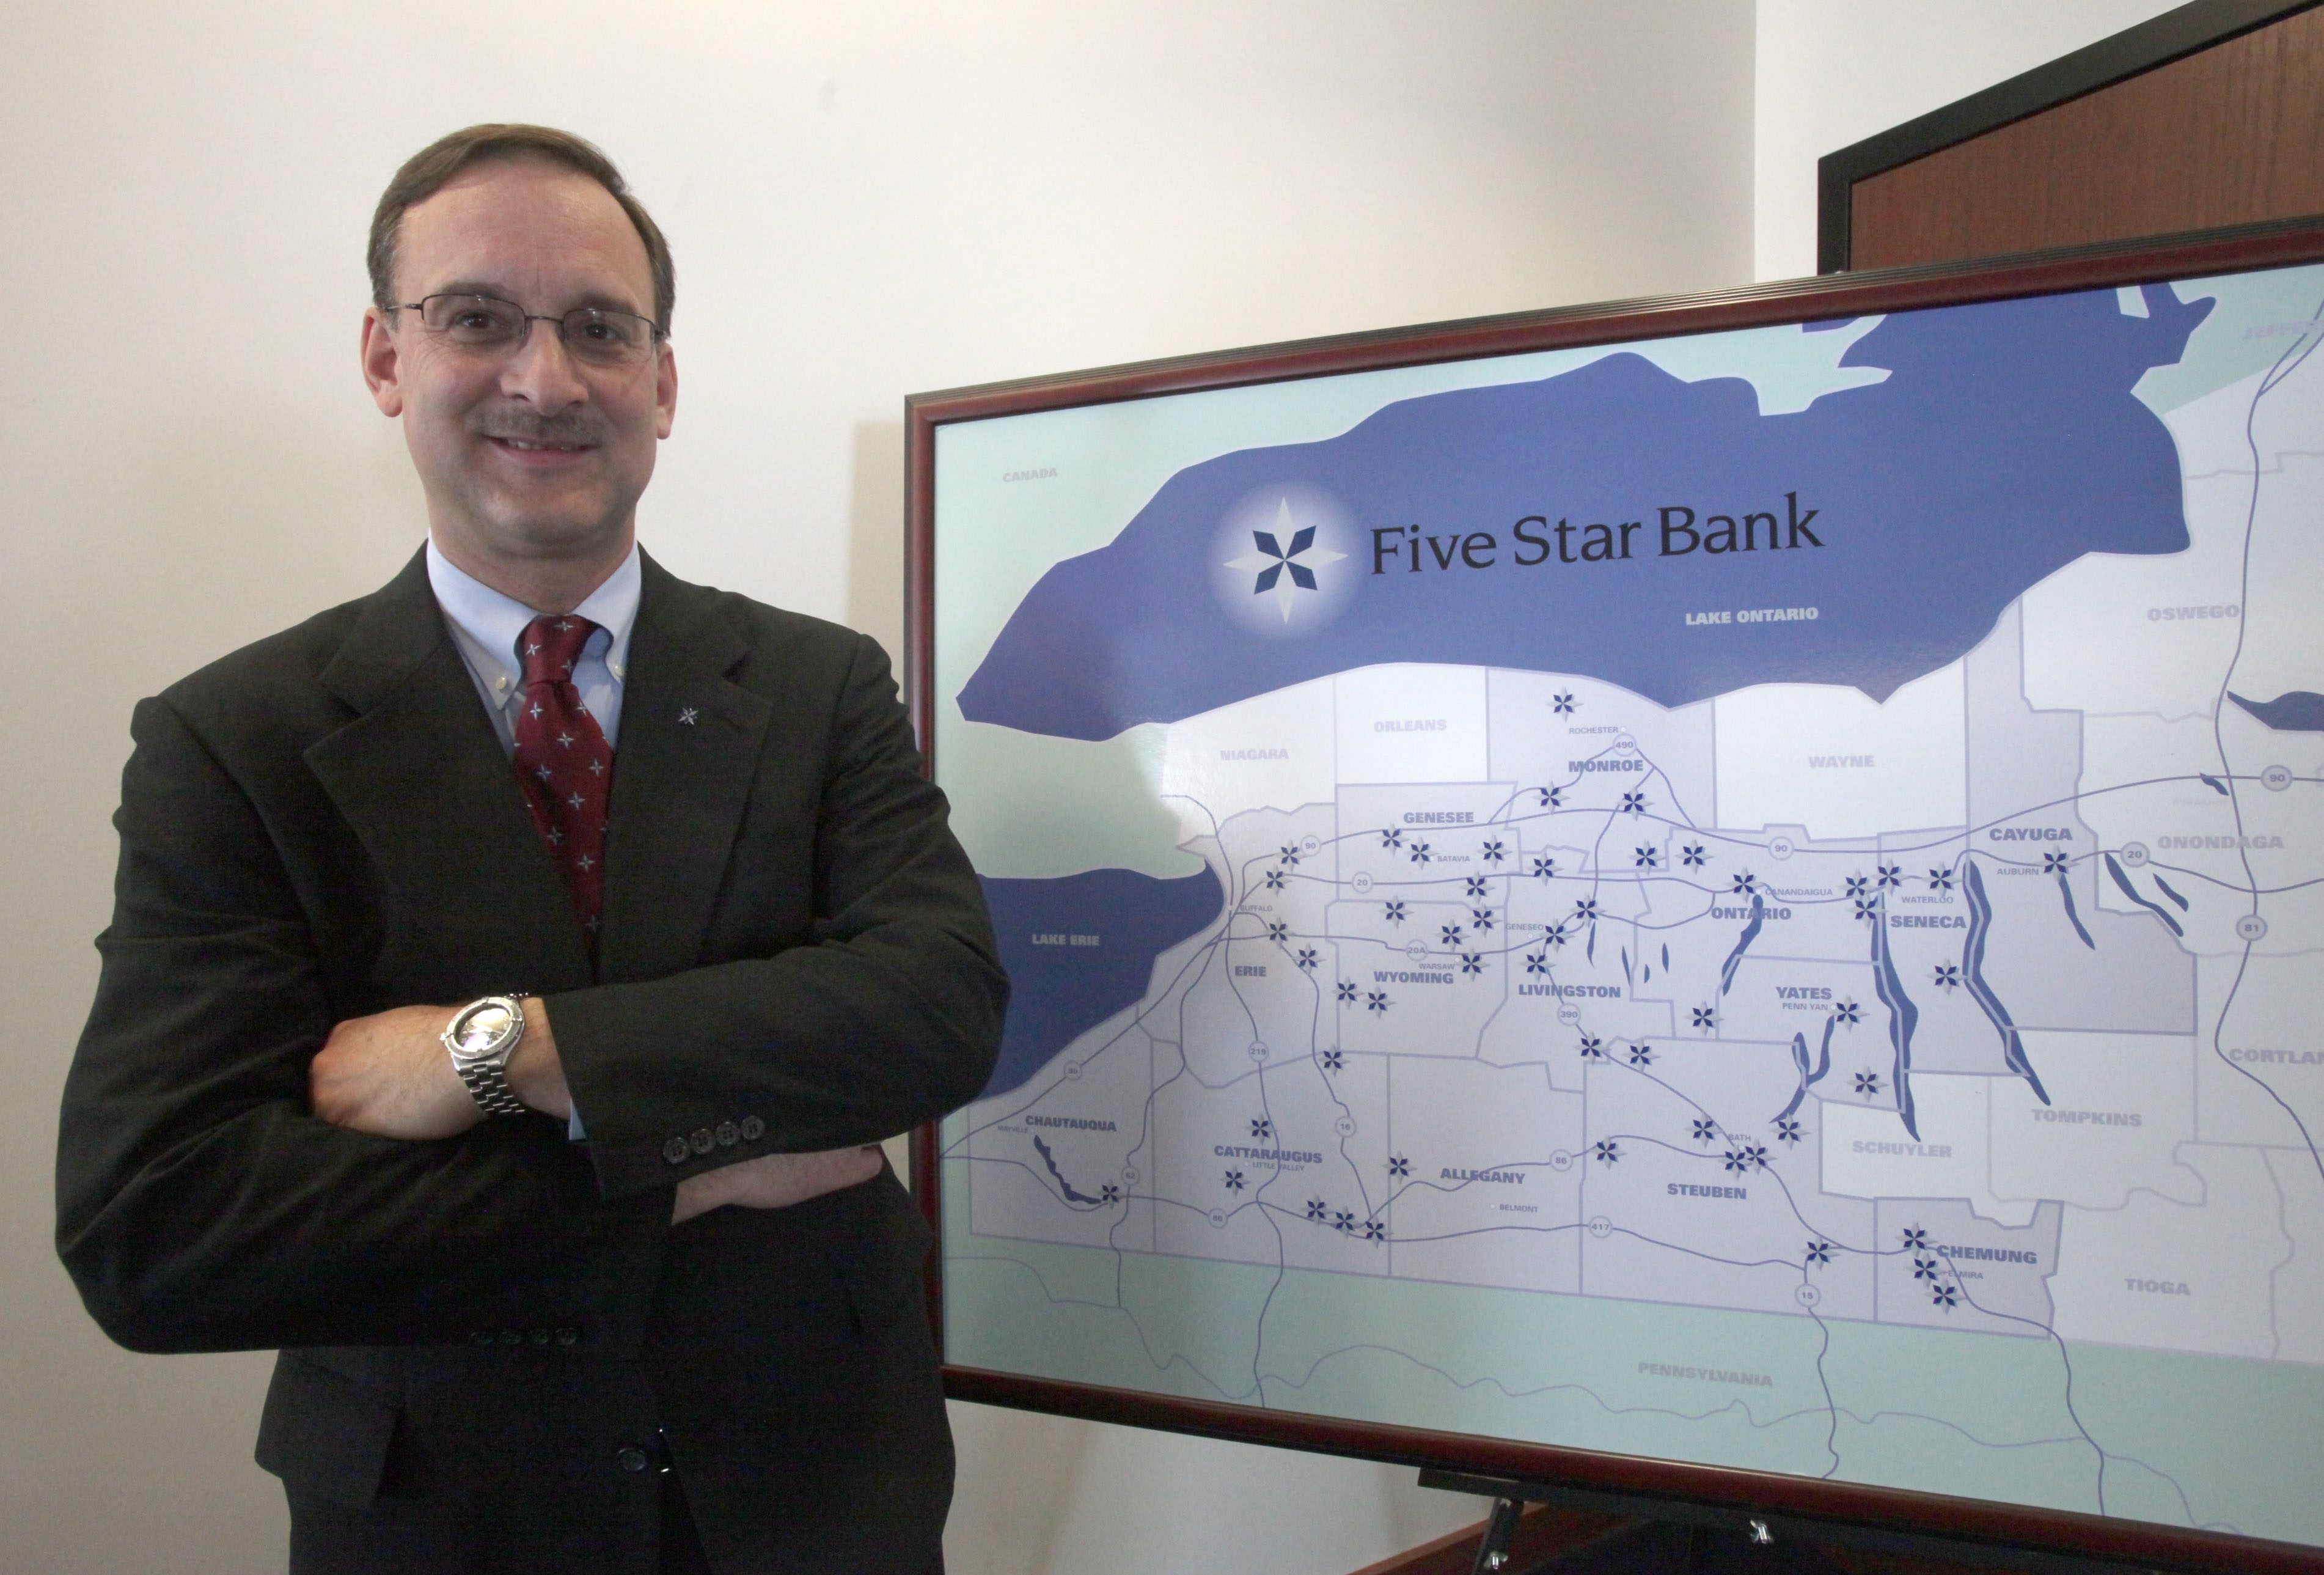 Peter Humphrey was a longtime CEO and president of Five Star Bank. He retired in August 2012.